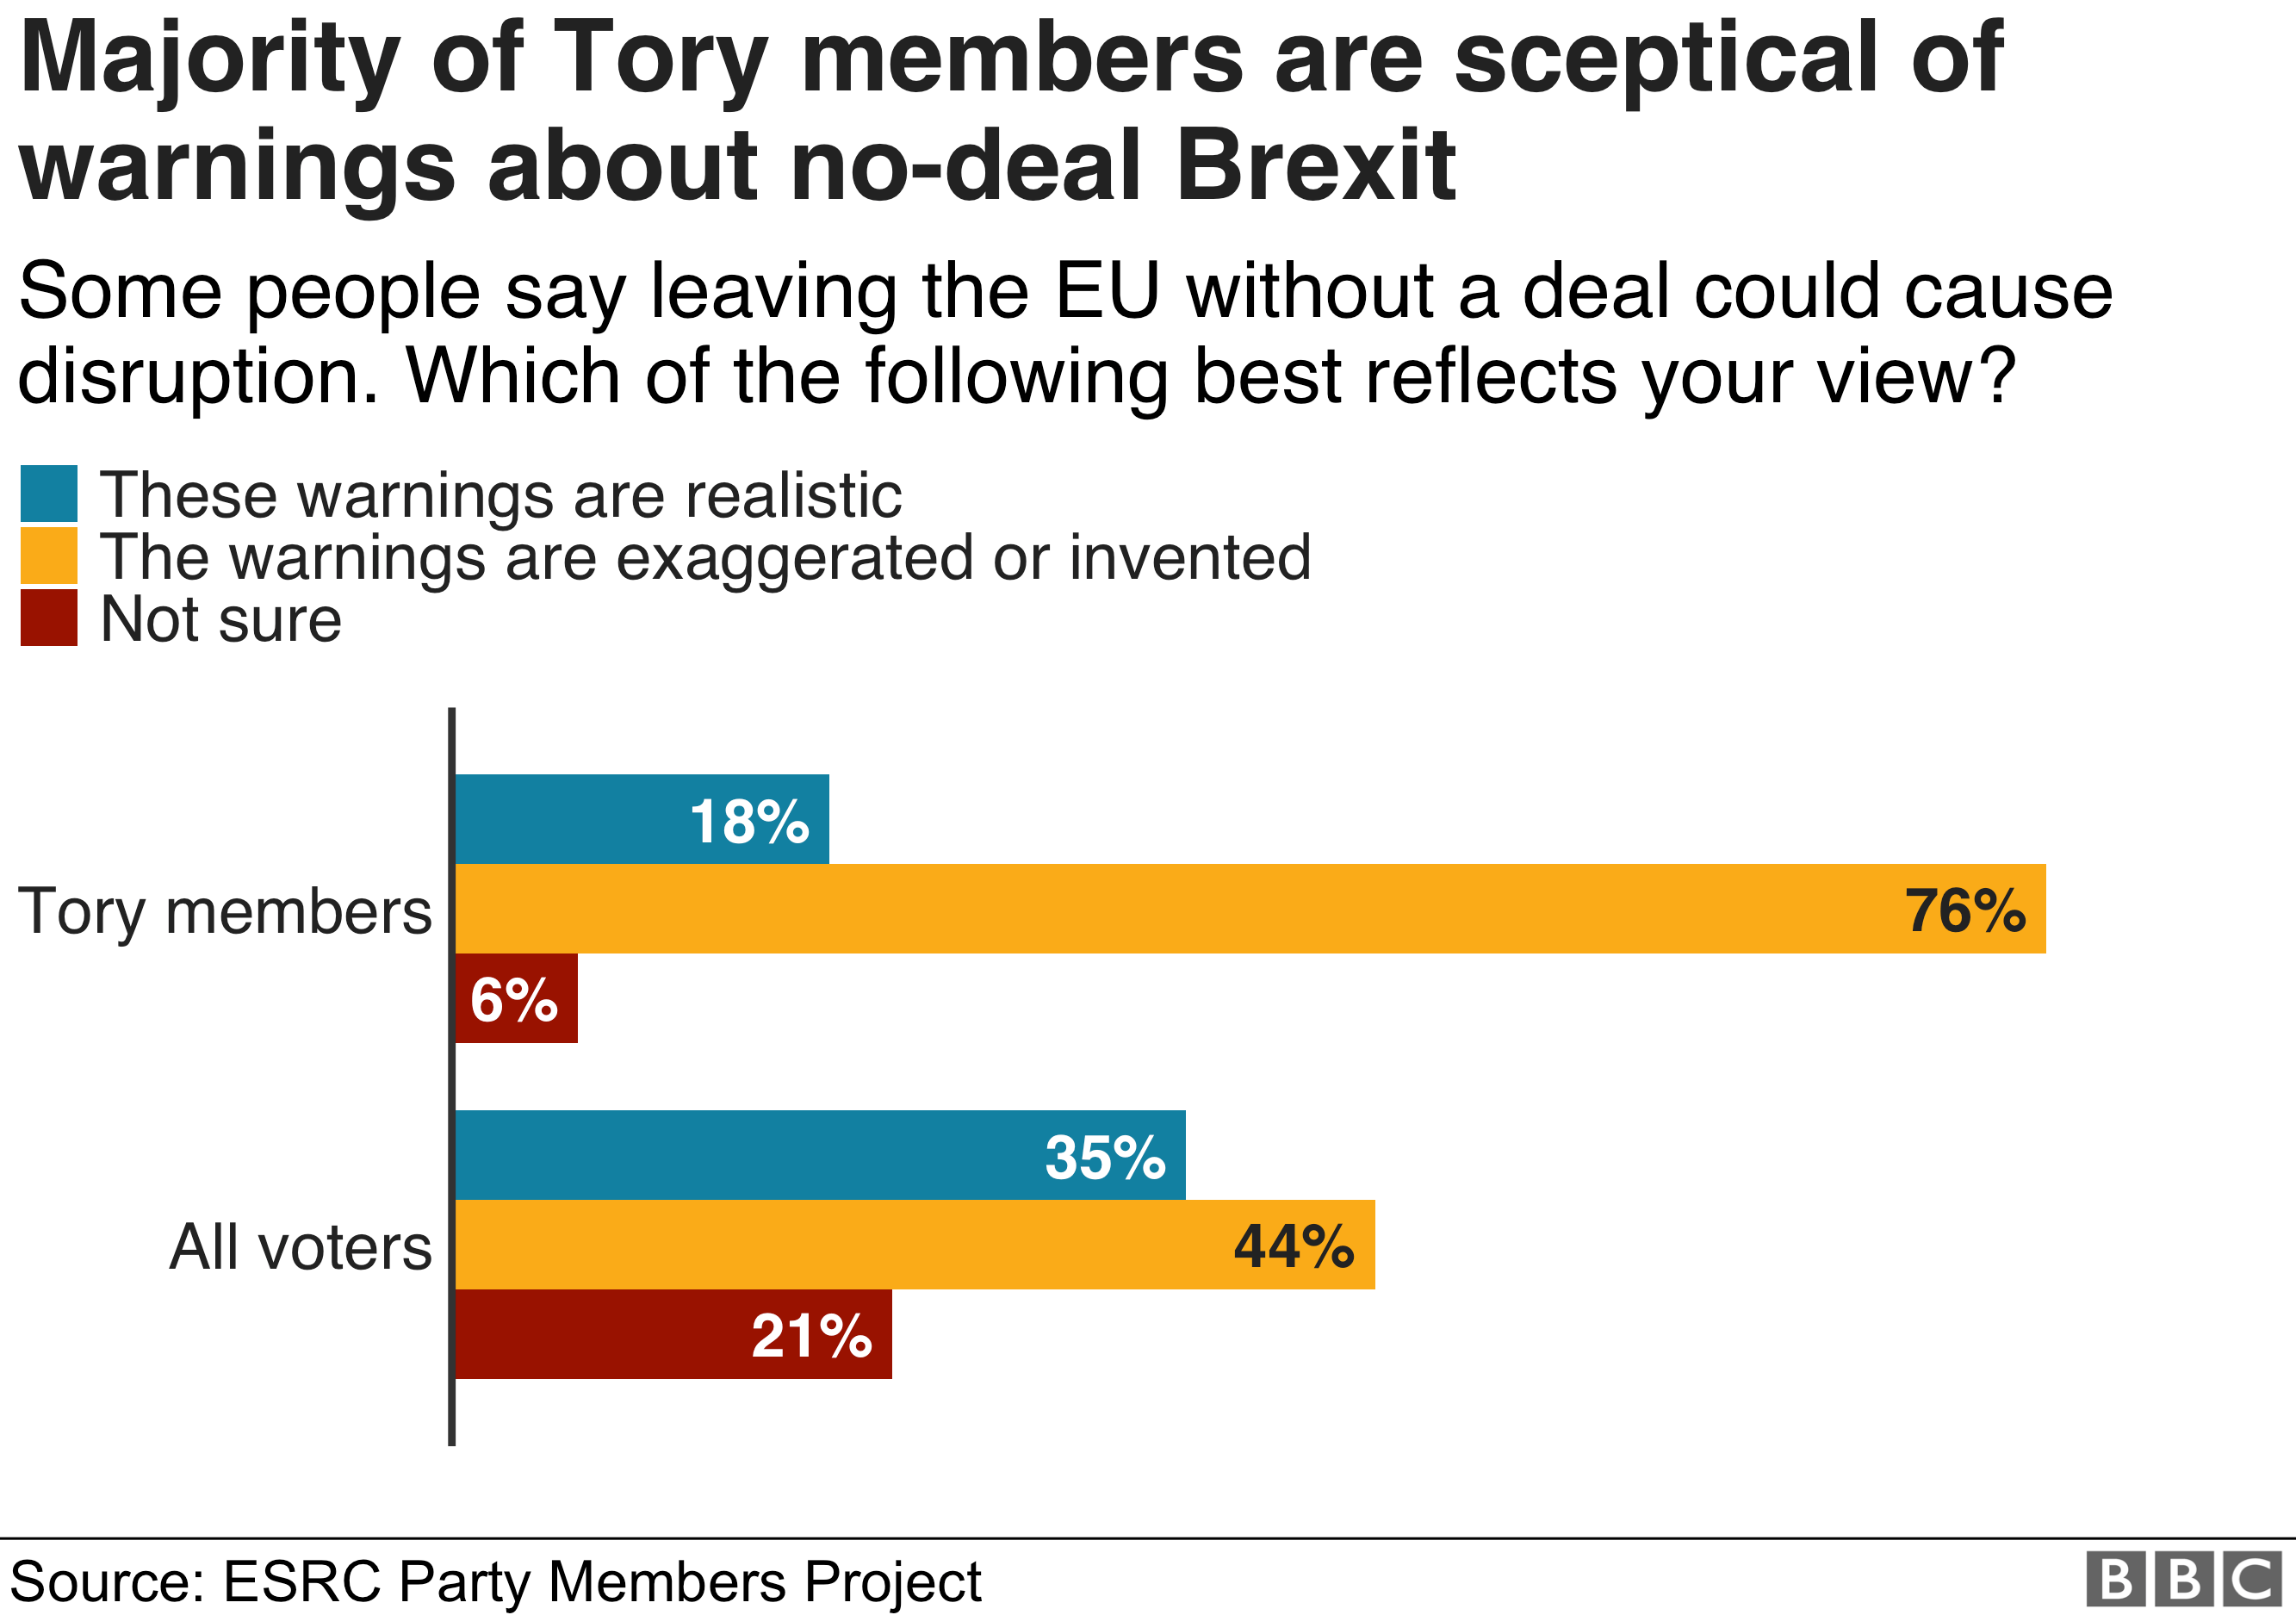 Bar chart showing a big majority of Tory members believe no deal warnings are over exaggerated